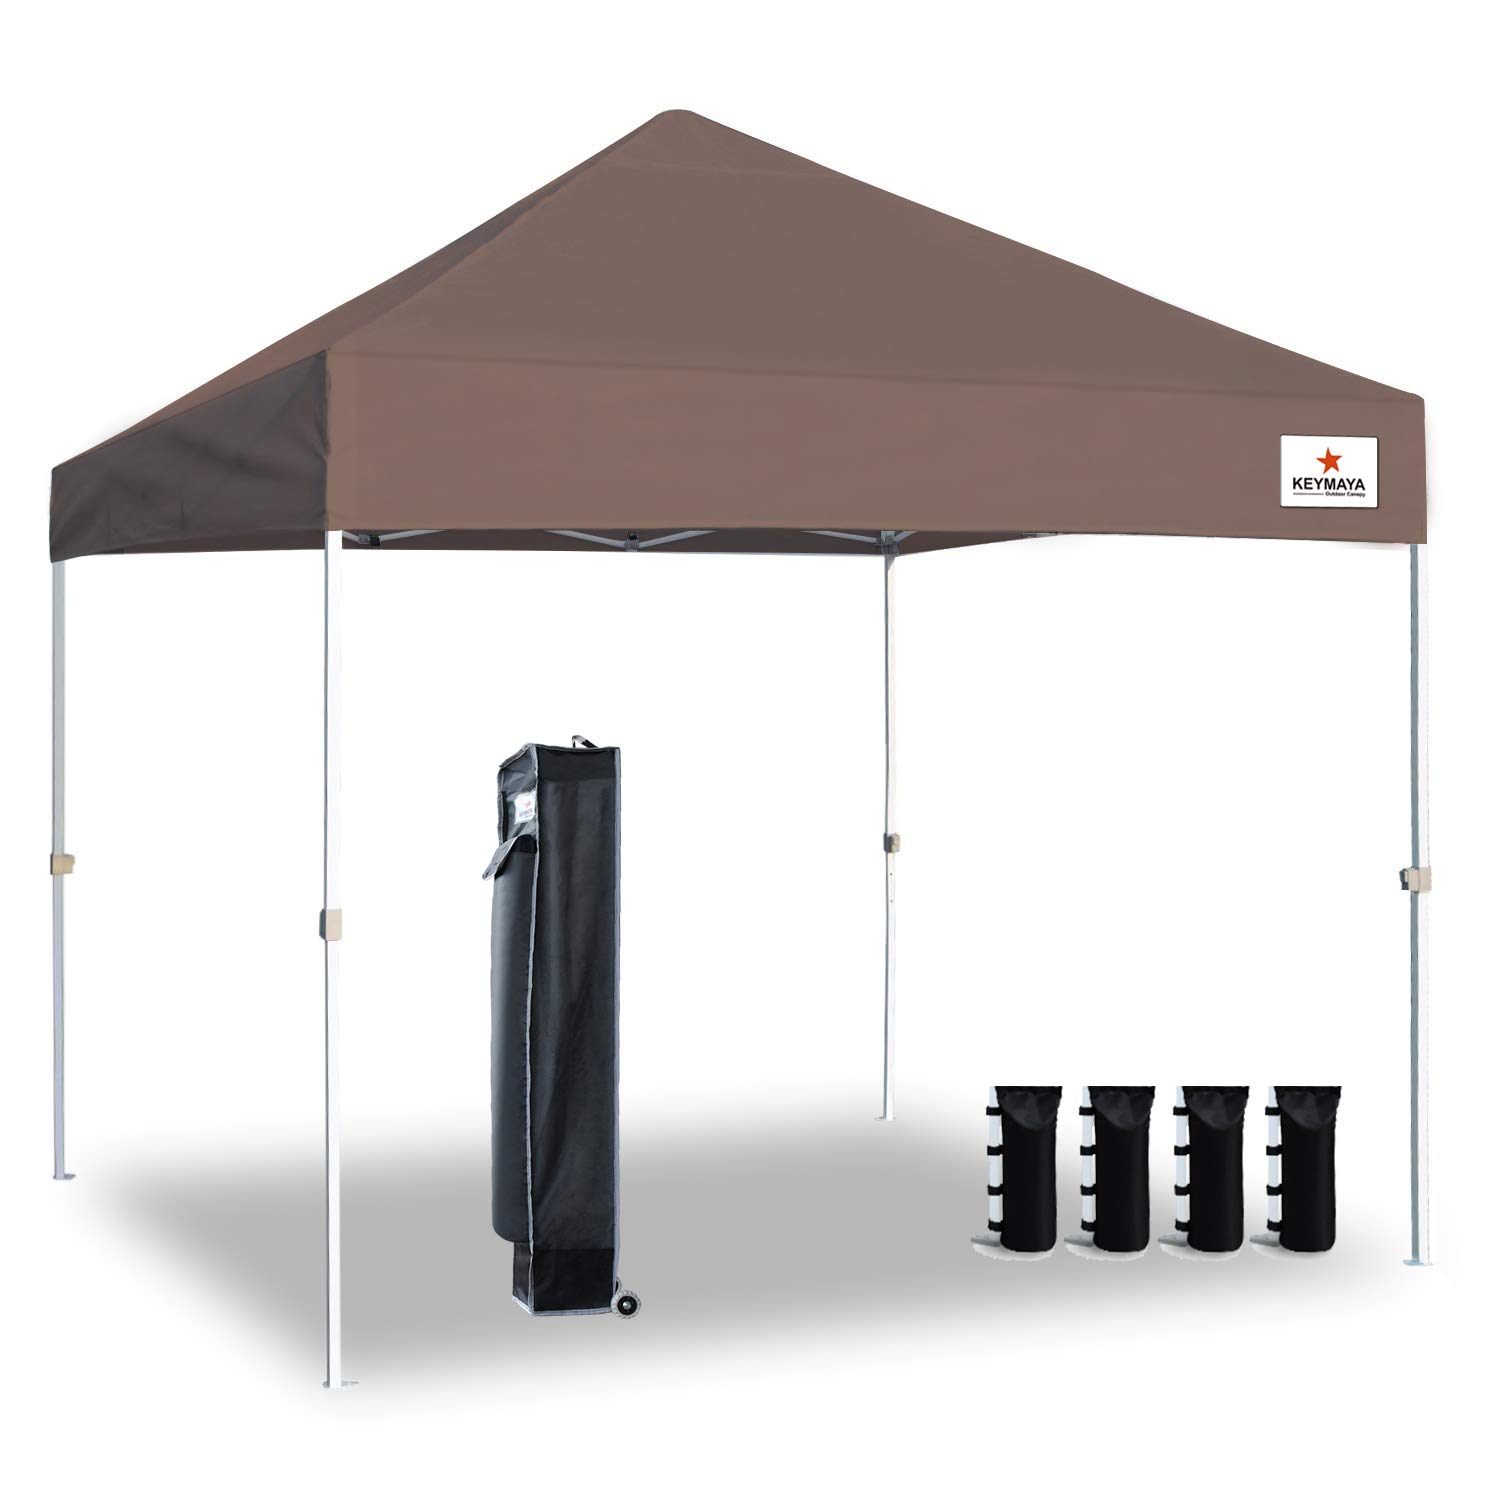 Keymaya 10'x10' Ez Pop Up Canopy Tent Commercial Instant Shelter Canopies Bonus Heavy Duty Weight Bag 4-pc Pack (Light Brown)